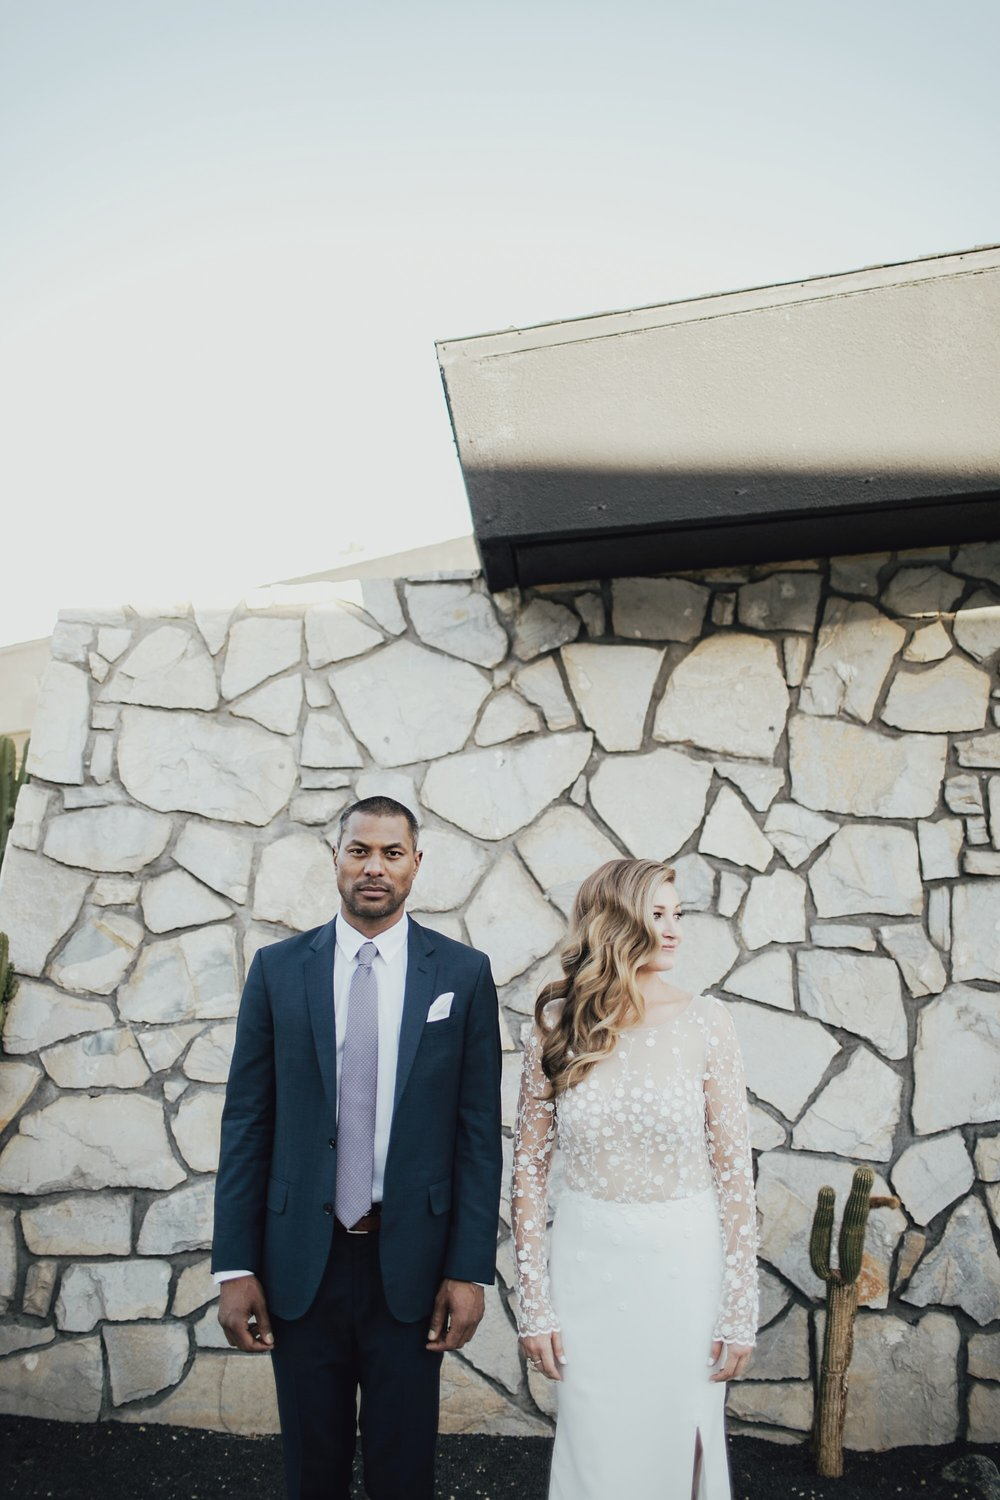 Ace Hotel wedding in Palm Springs